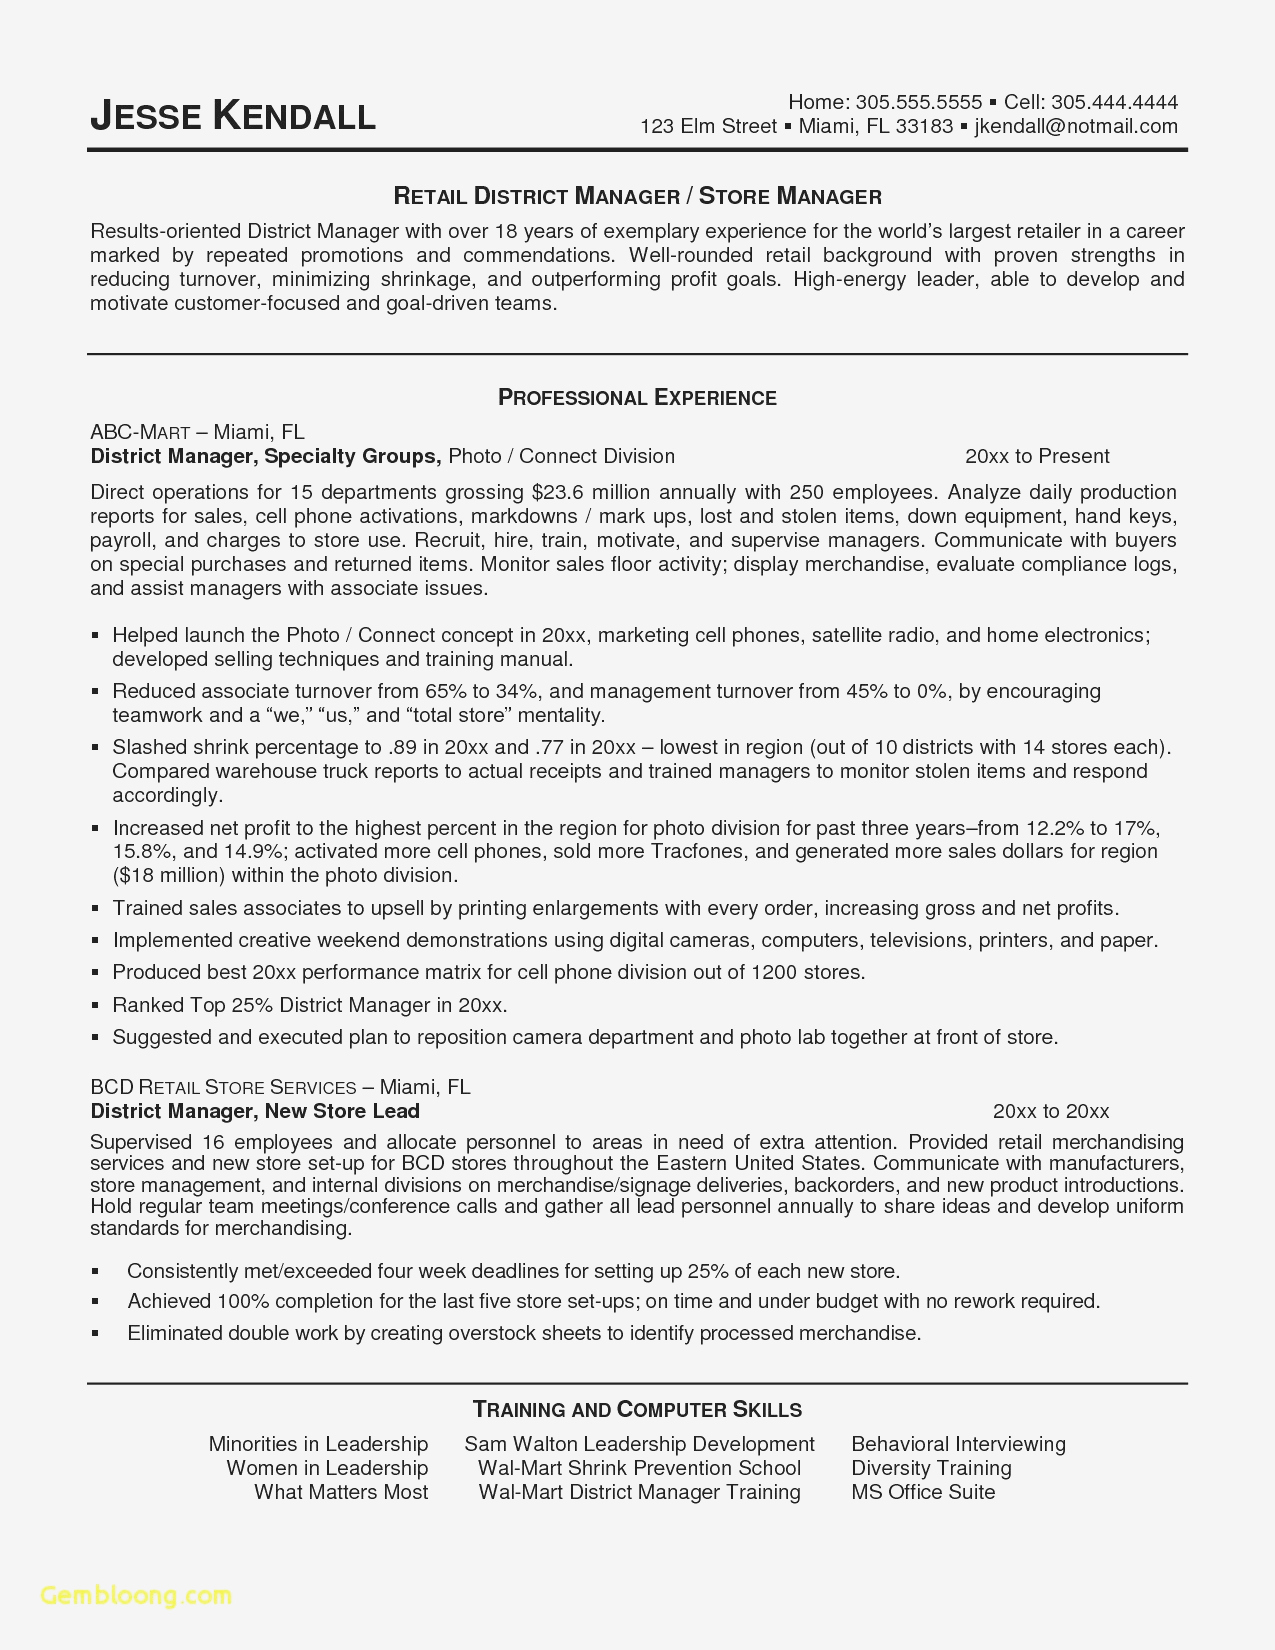 Retail Store Resume - Retail Store Manager Sample Resume